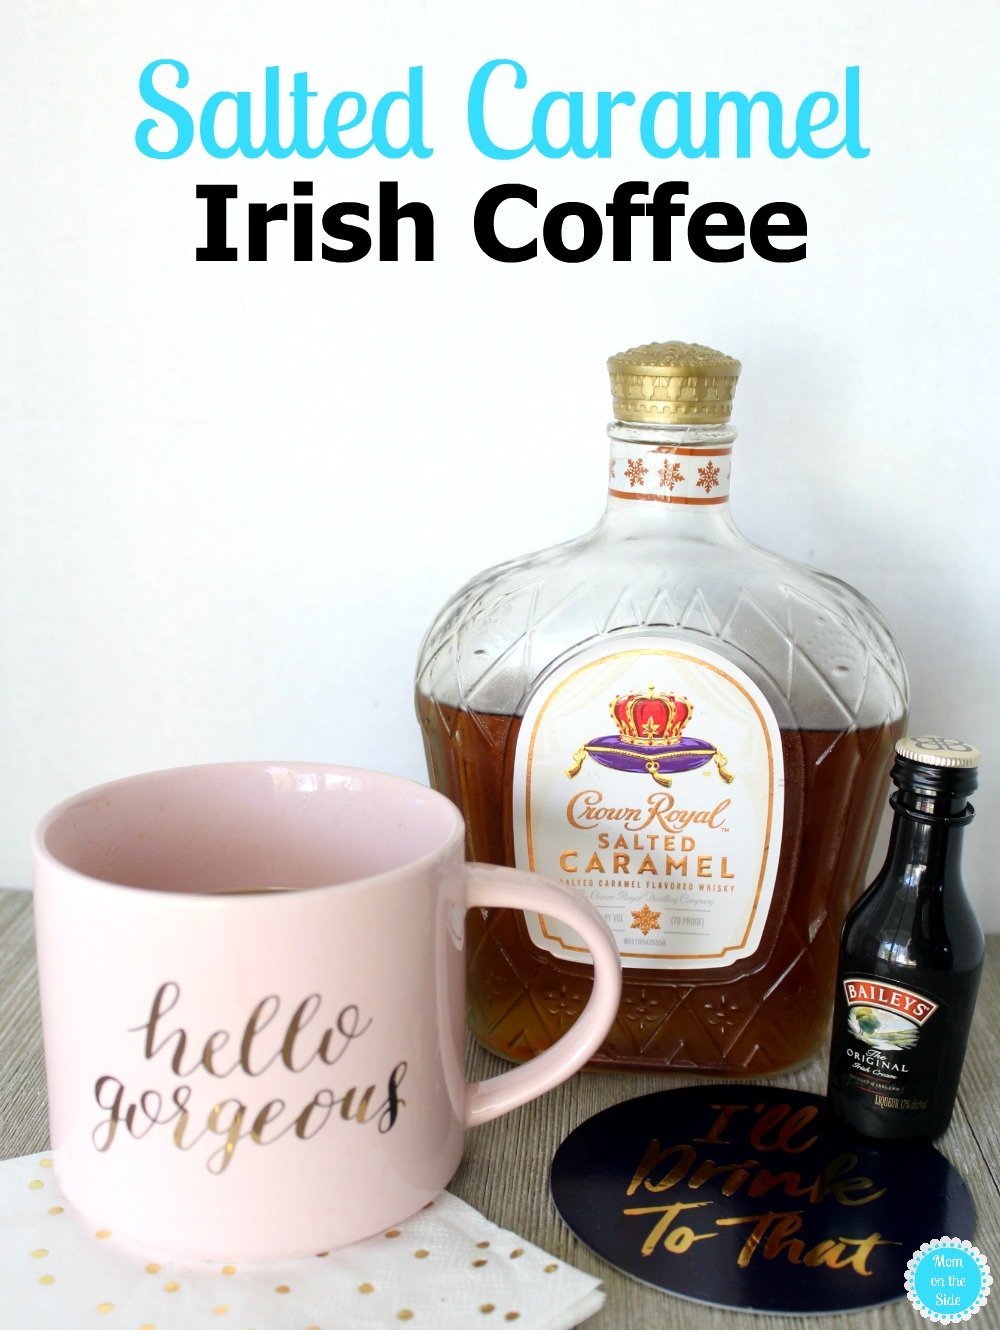 Cocktail Recipe for Salted Caramel Irish Coffee with Crown Royal Salted Caramel